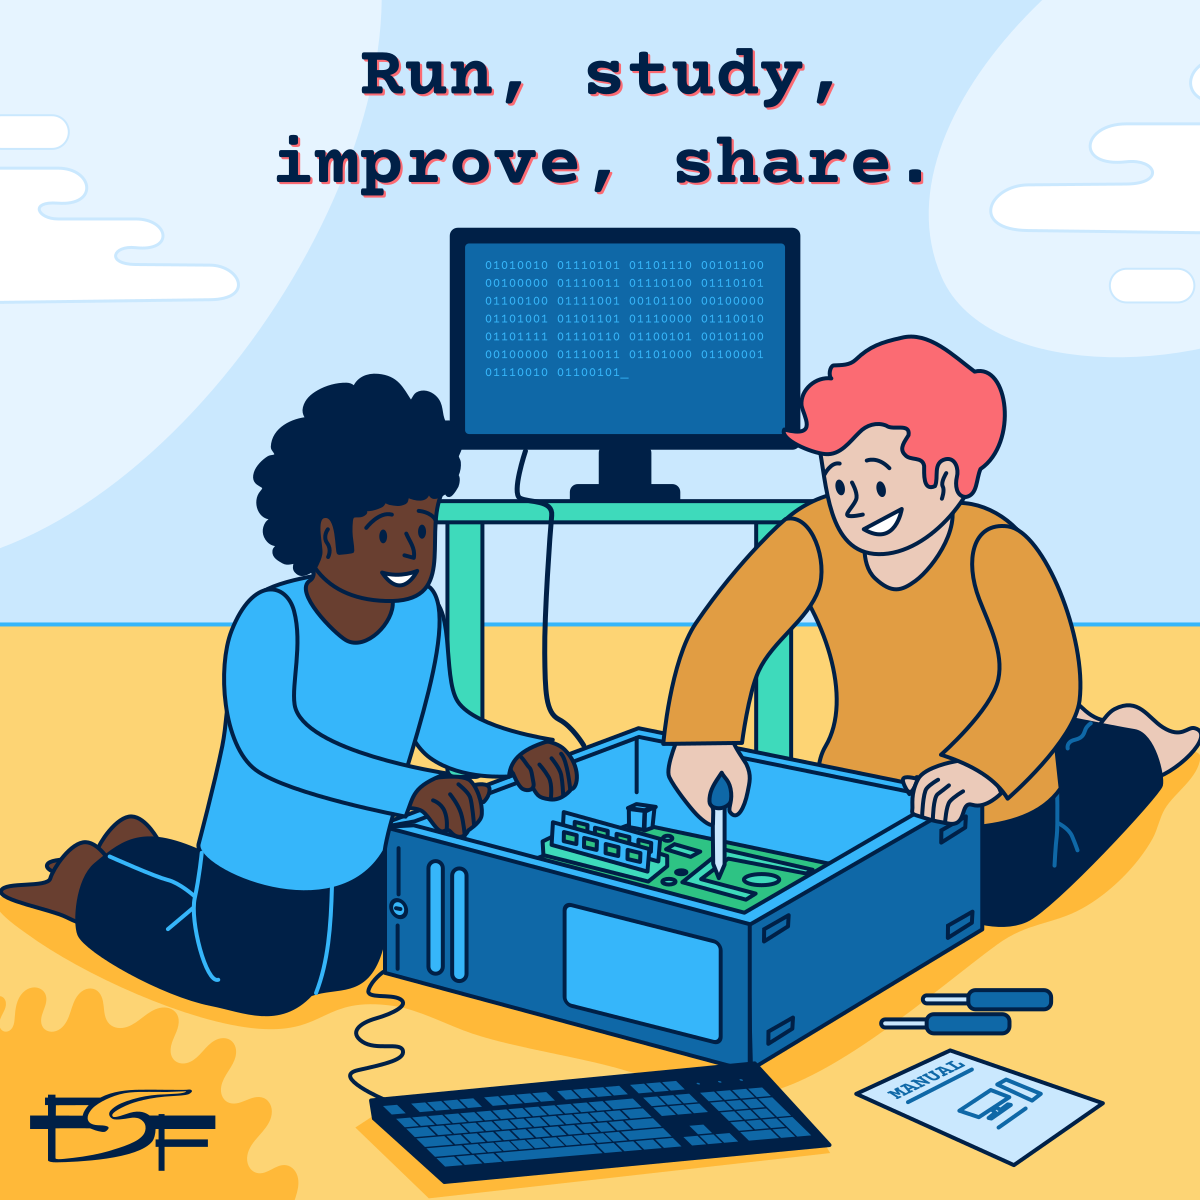 Illustration of 2 people working on a computer